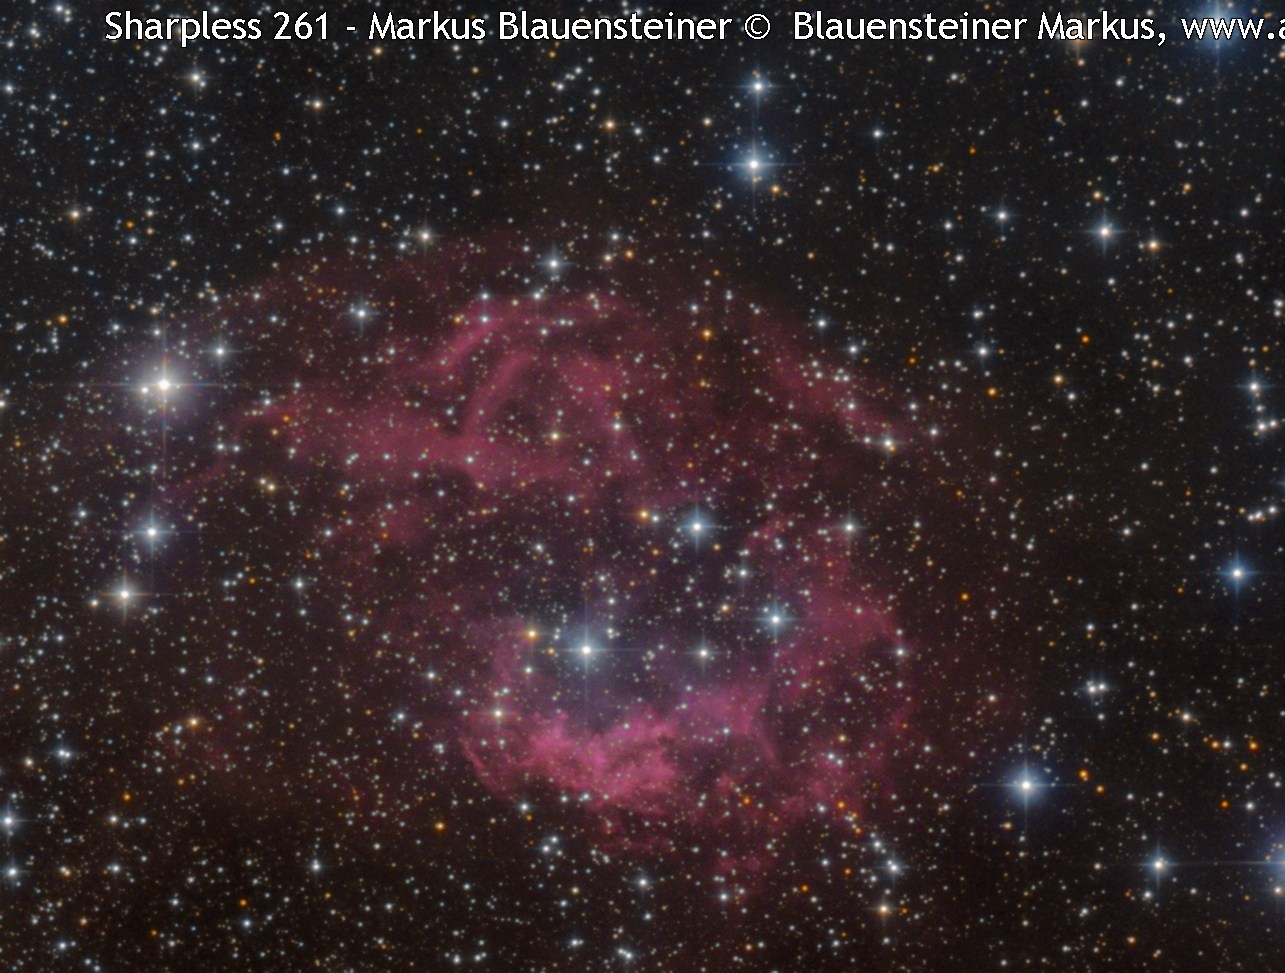 Sharpless-Sharpless 261 © image-owner(s)